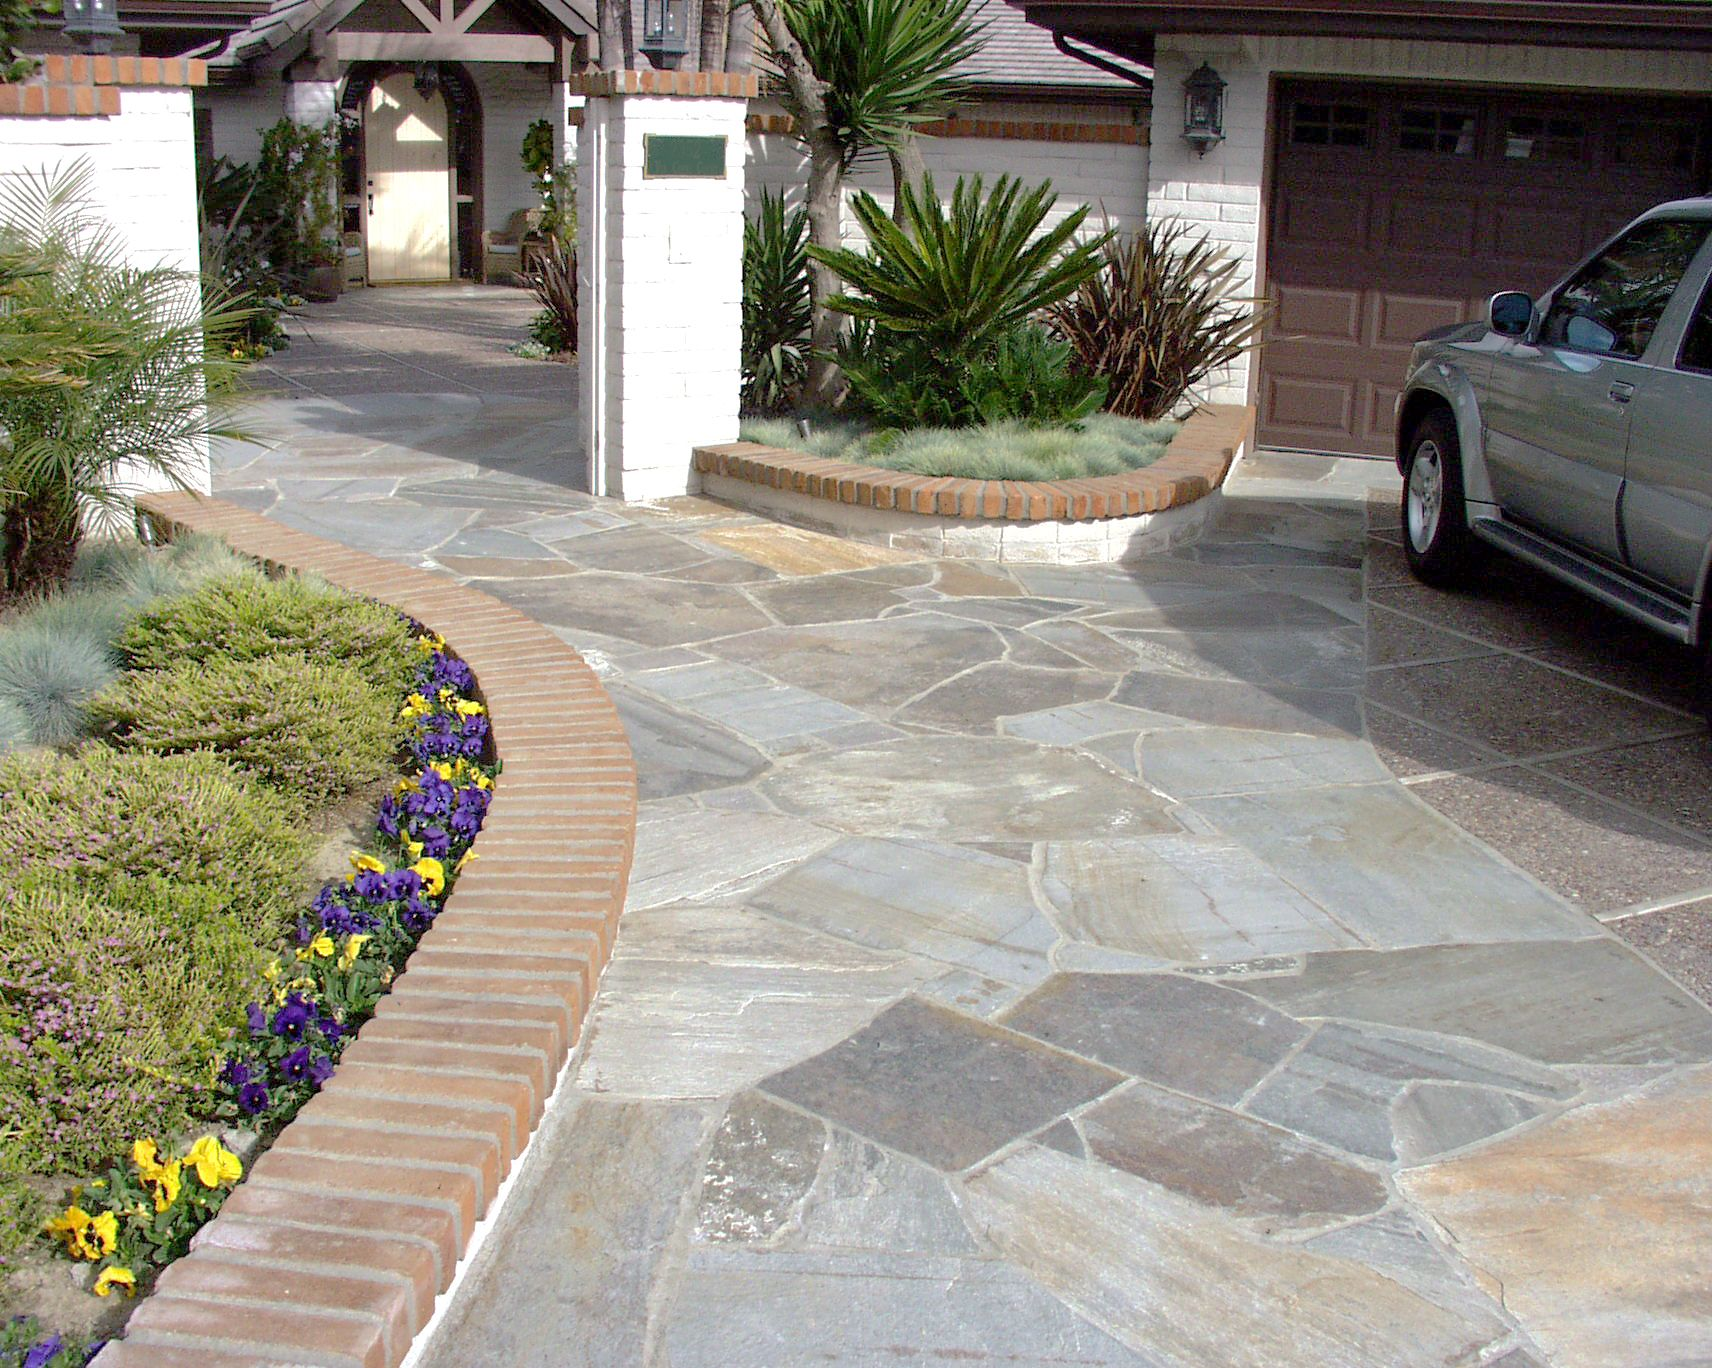 Flagstone Patio Block : Fresh ideas to use flagstone pavers for ground covers